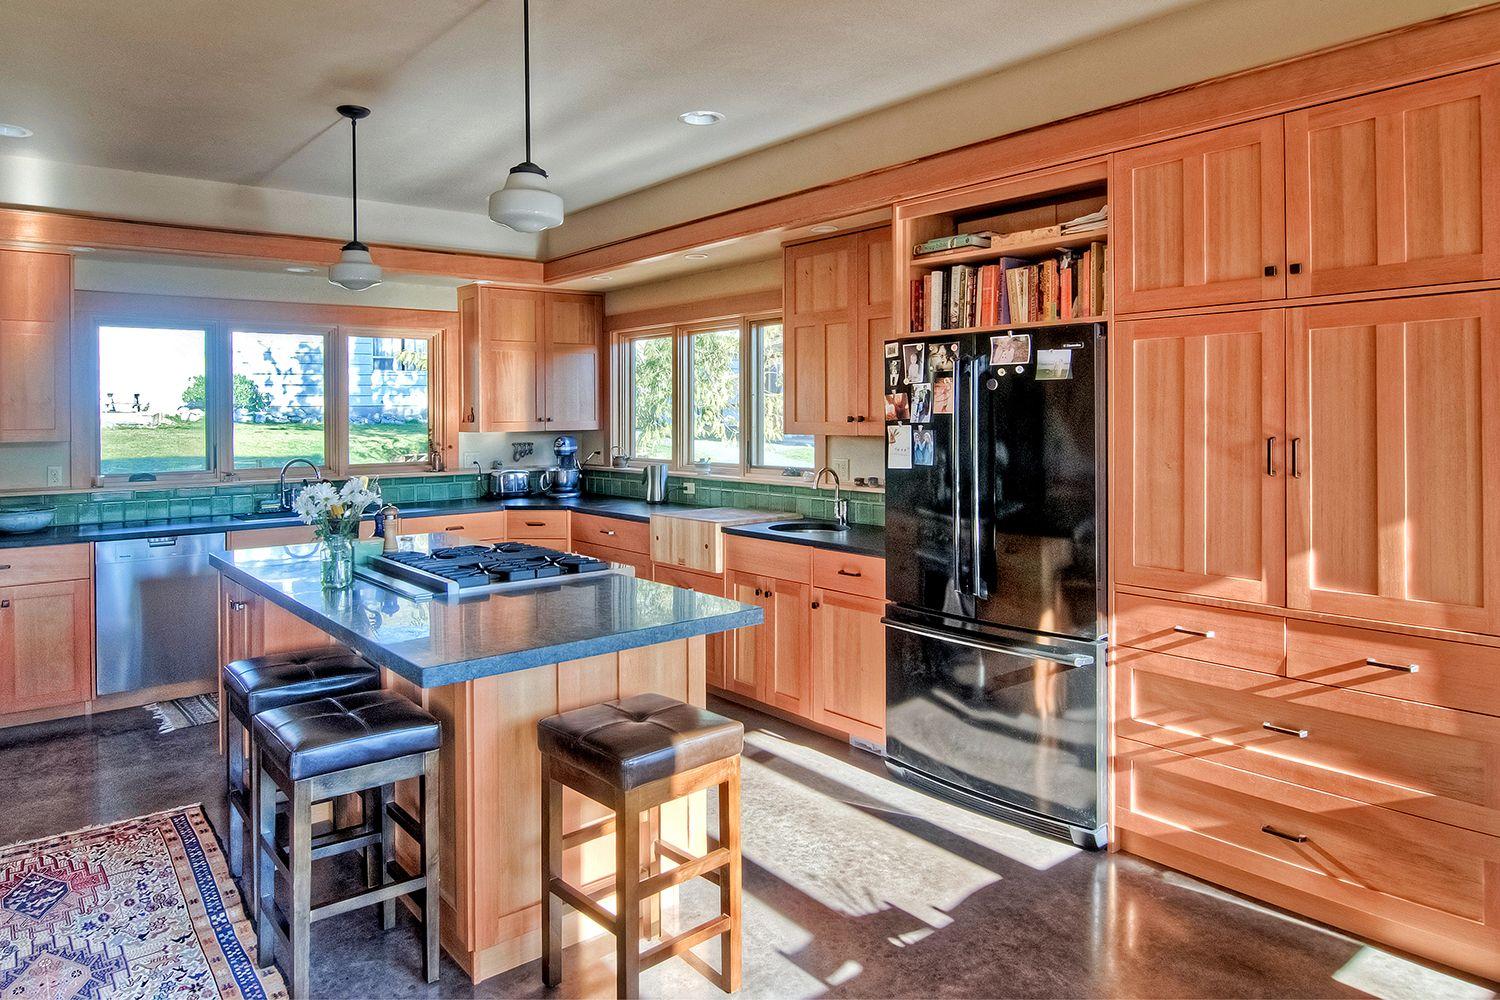 Custom Maple Kitchen Cabinets With Kitchen Island Stove And Stained Concrete Floors Millworks Is Craftsman Kitchen Modern Kitchen Design Maple Kitchen Cabinets